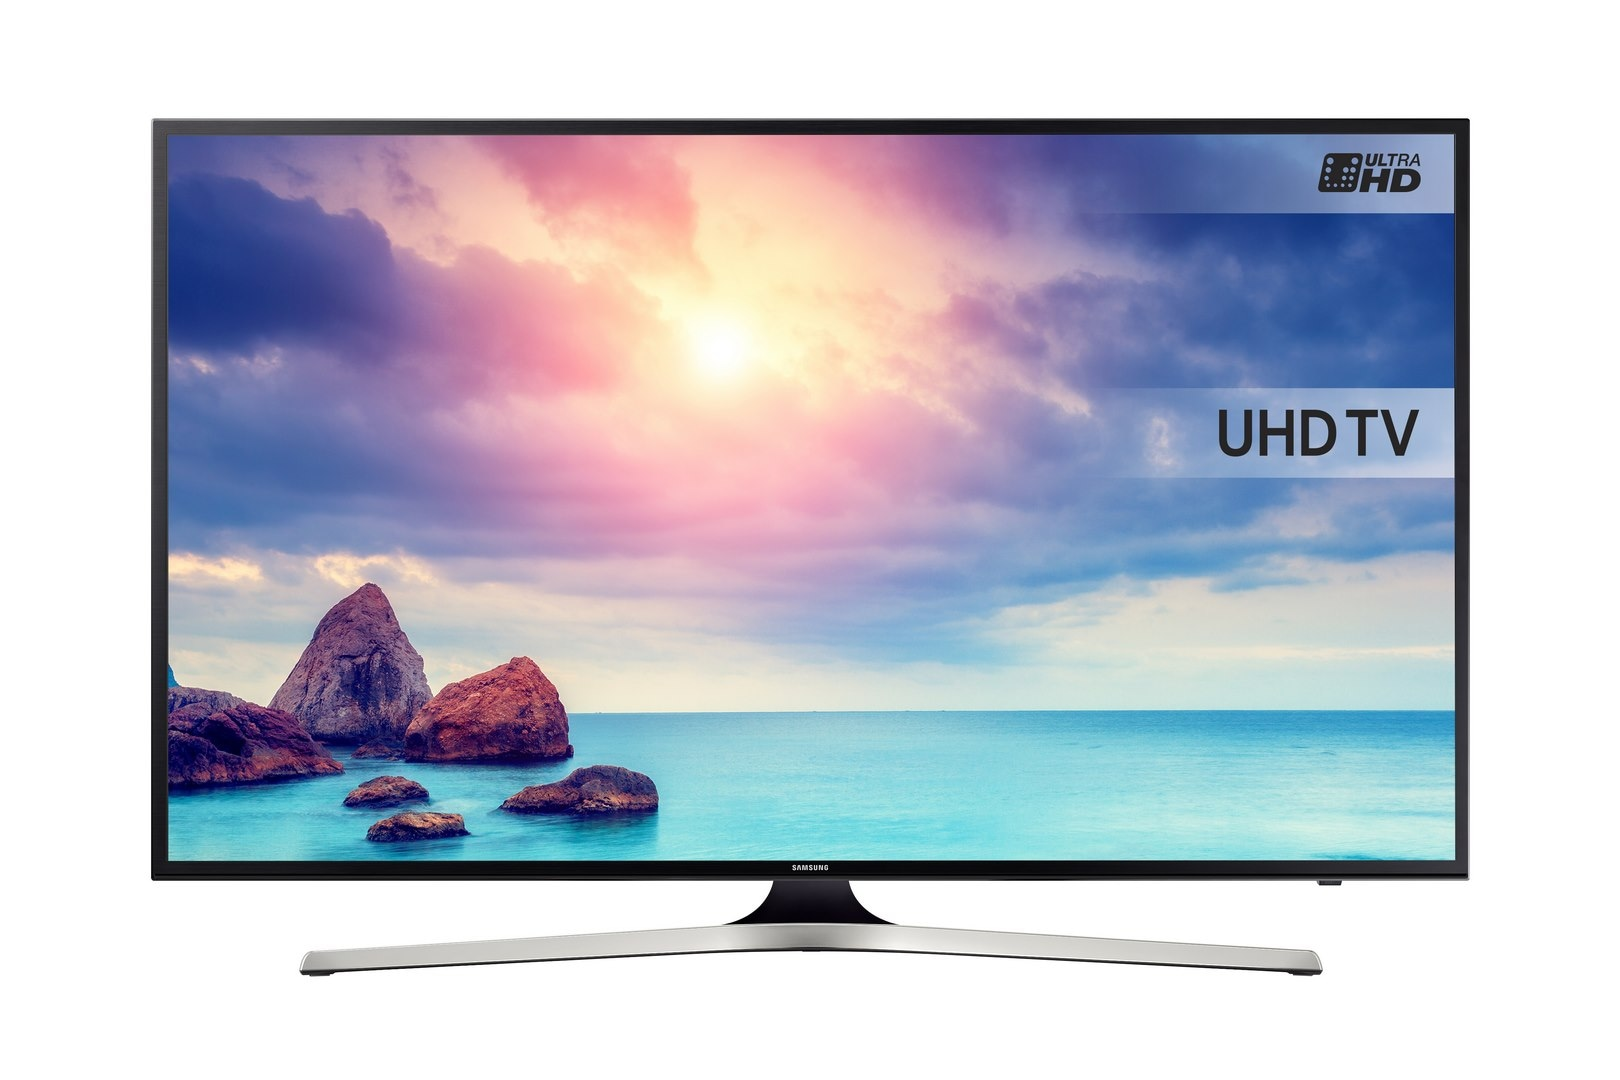 6-Series Crystal Color UHD TV UE55KU6020